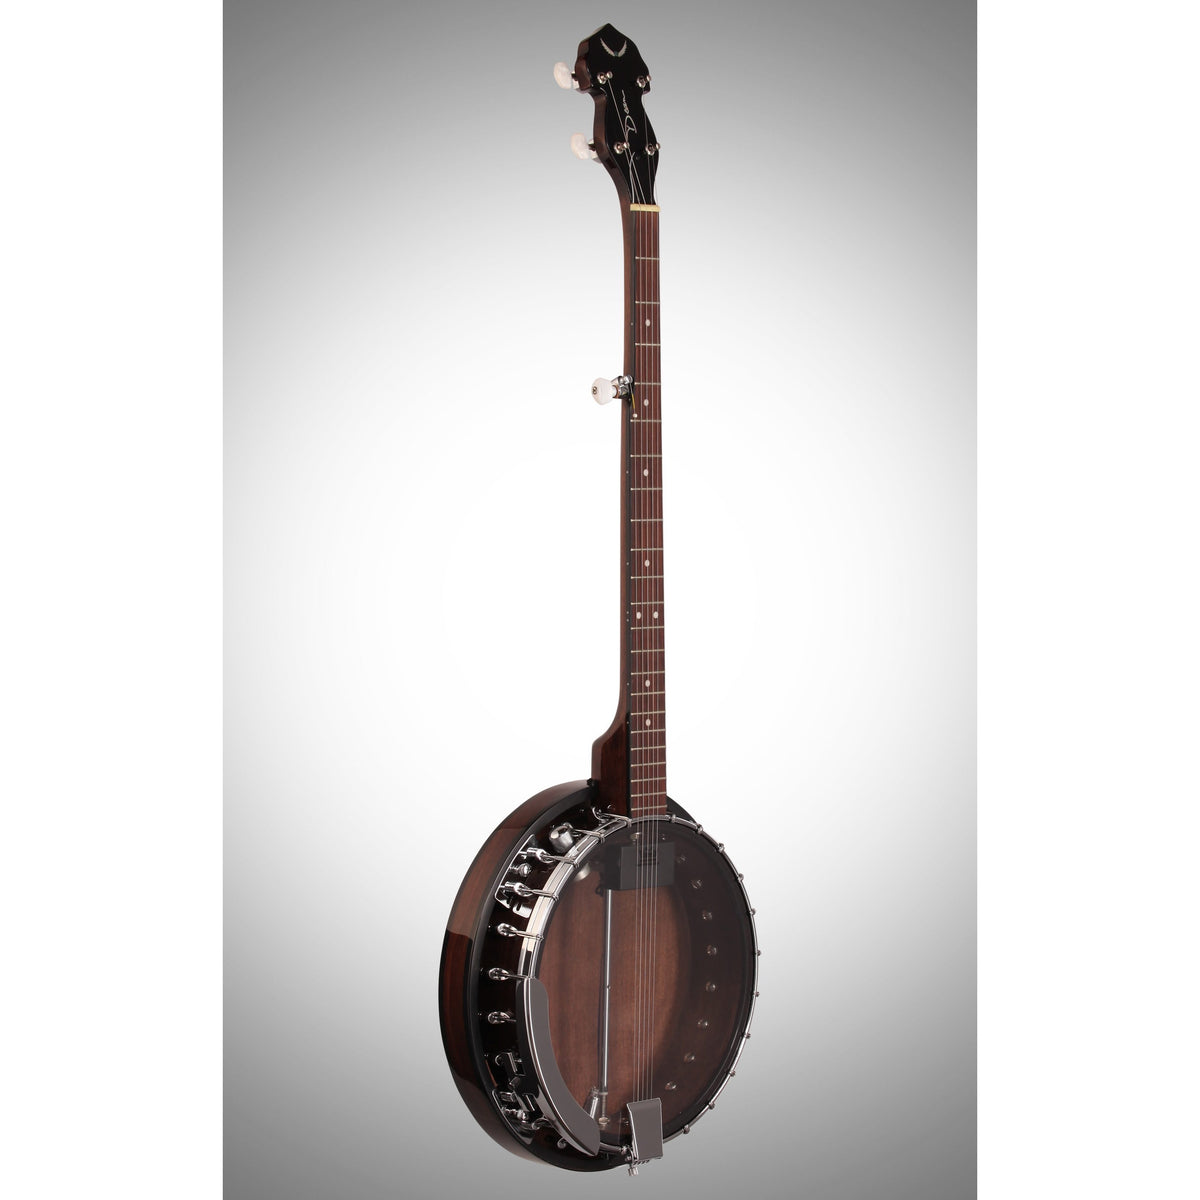 Dean Backwoods 2 Electric Banjo with Pickup, Black Chrome